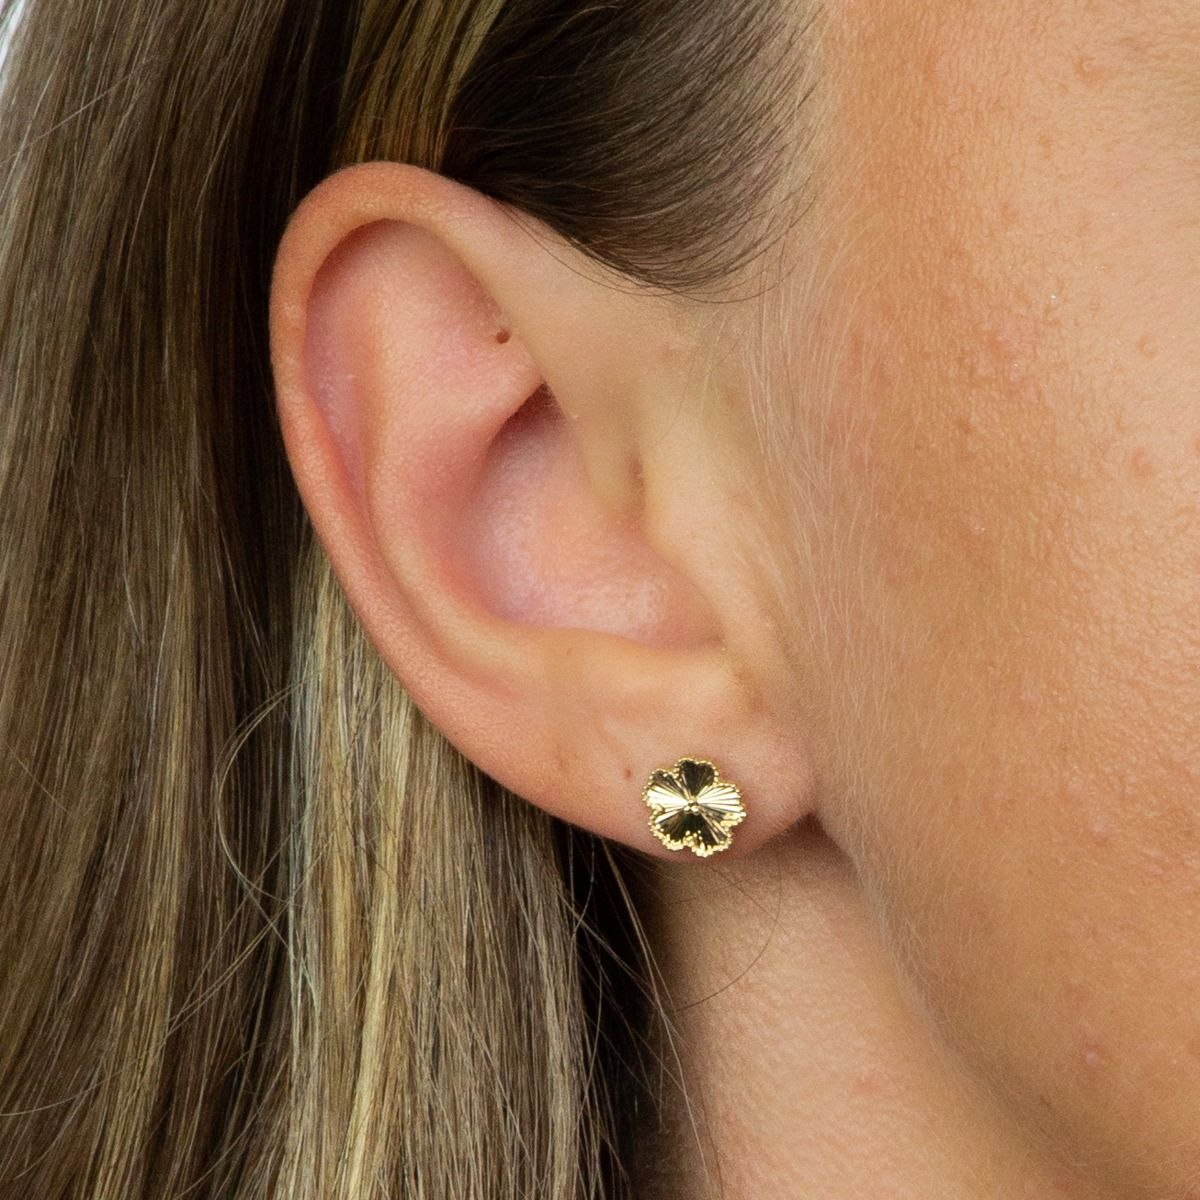 9ct Gold Flower Stud Earrings Jewellery Gecko